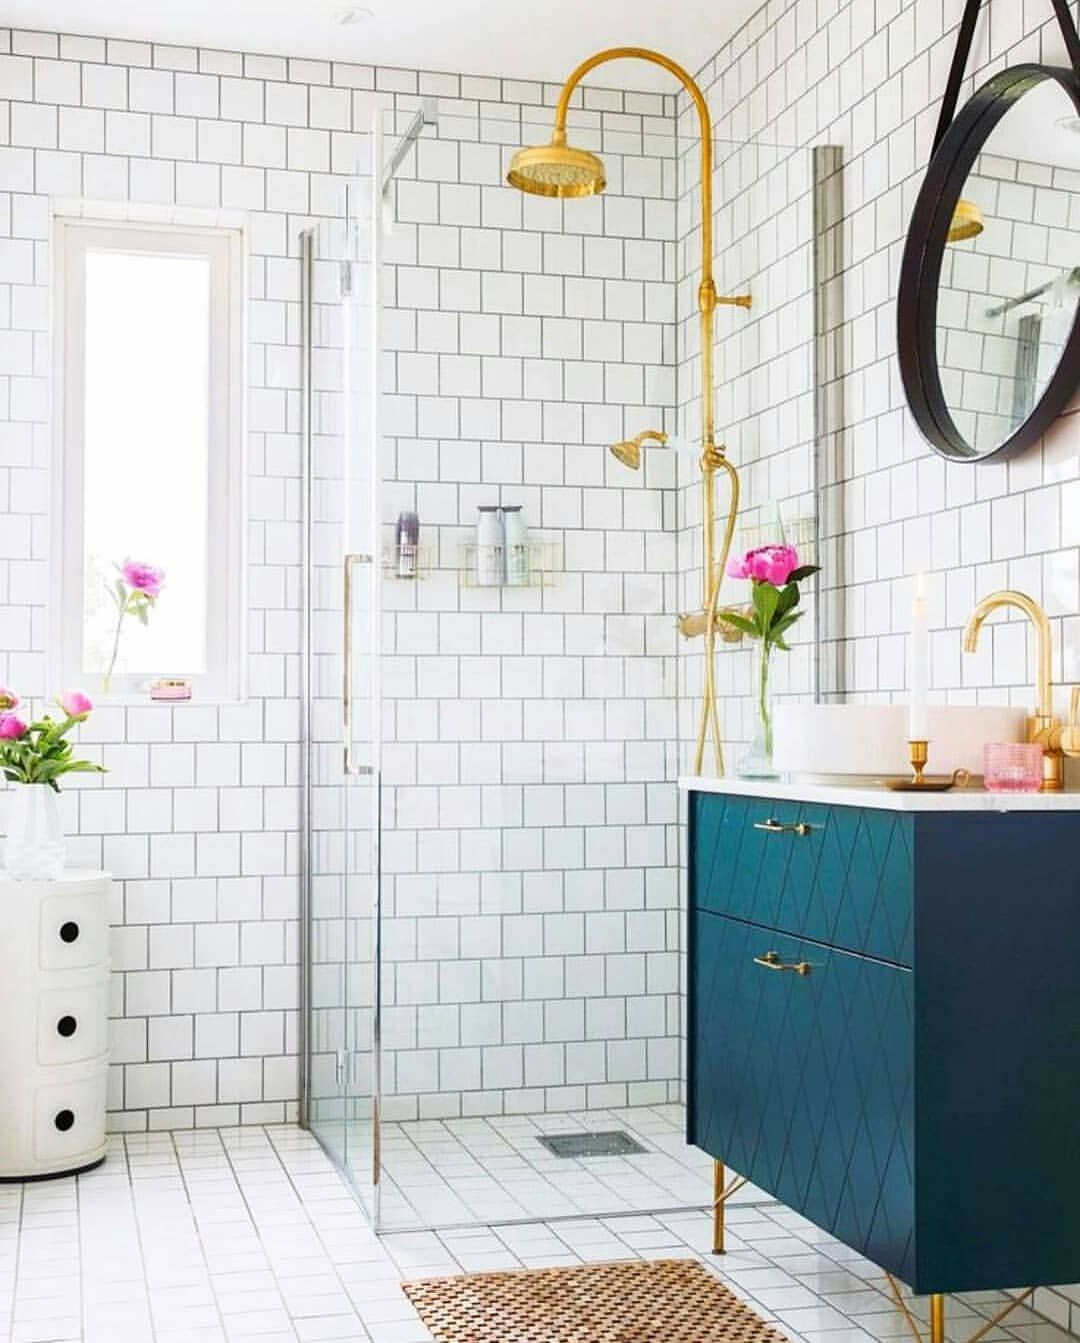 Hello Bright Happy Bathroom I D Like To Take You Home I Saw This Picture On Dis Bathroom Renovation Cost Small Bathroom Inspiration Bathroom Shelf Decor